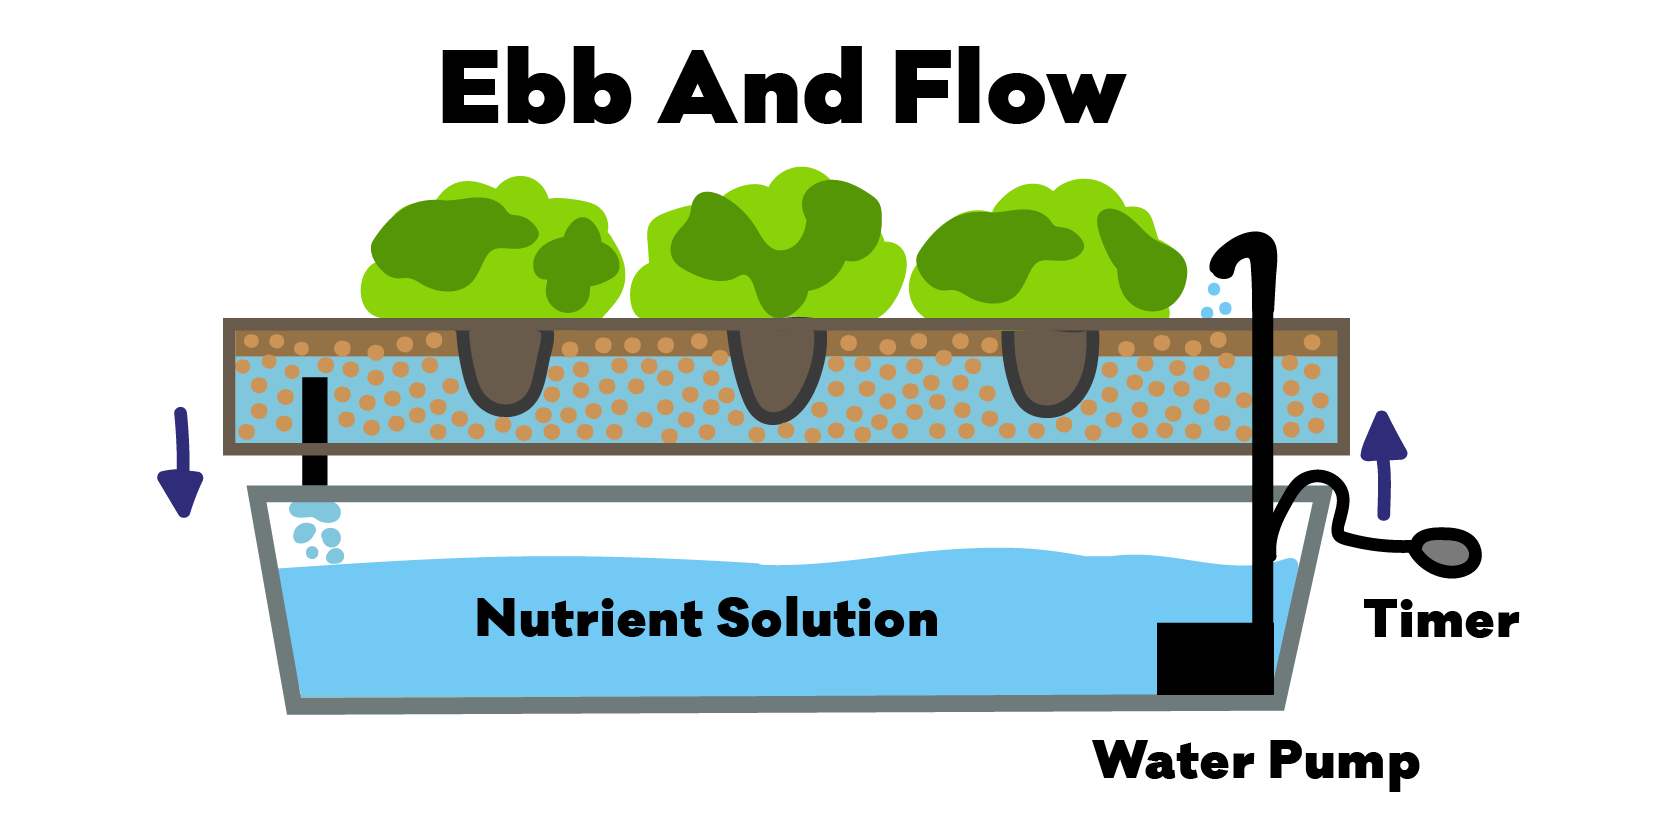 Diagram of the hydroponic Ebb and Flow System / Method